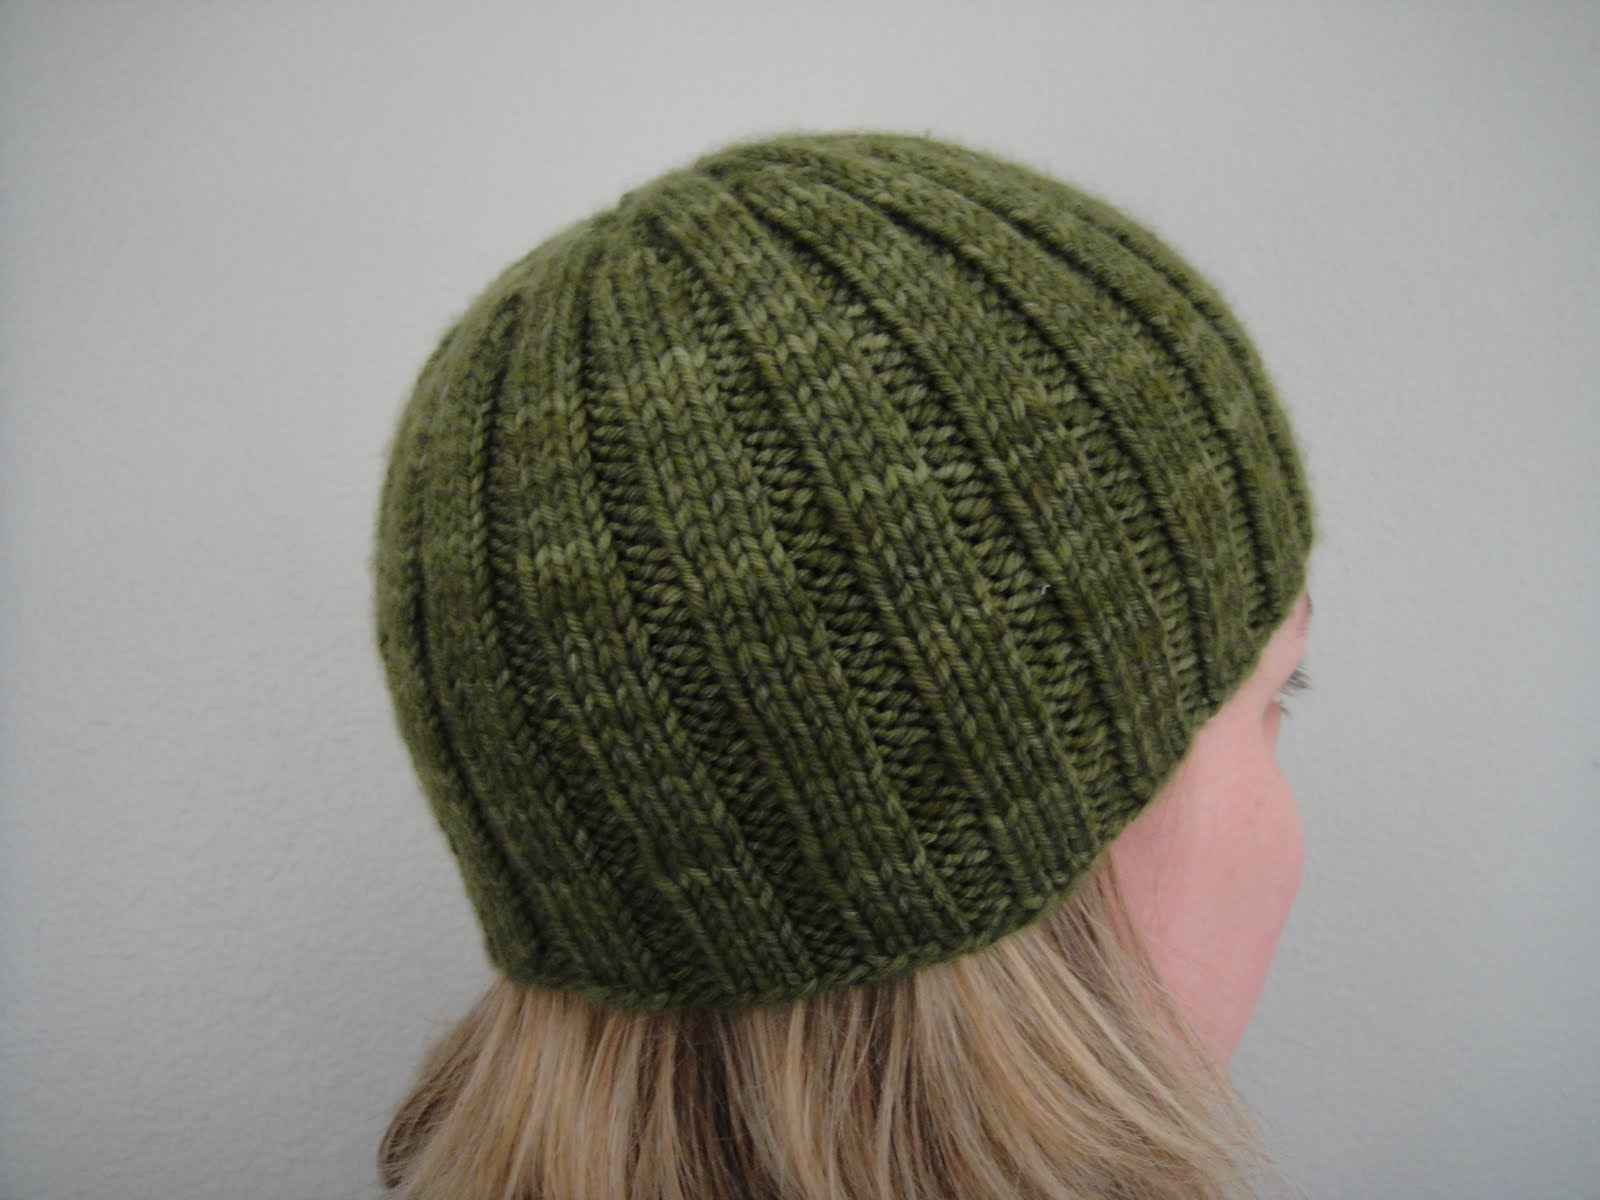 Knitting Pattern For Duck Hat : knitting duck: FO: Hats - Part 3